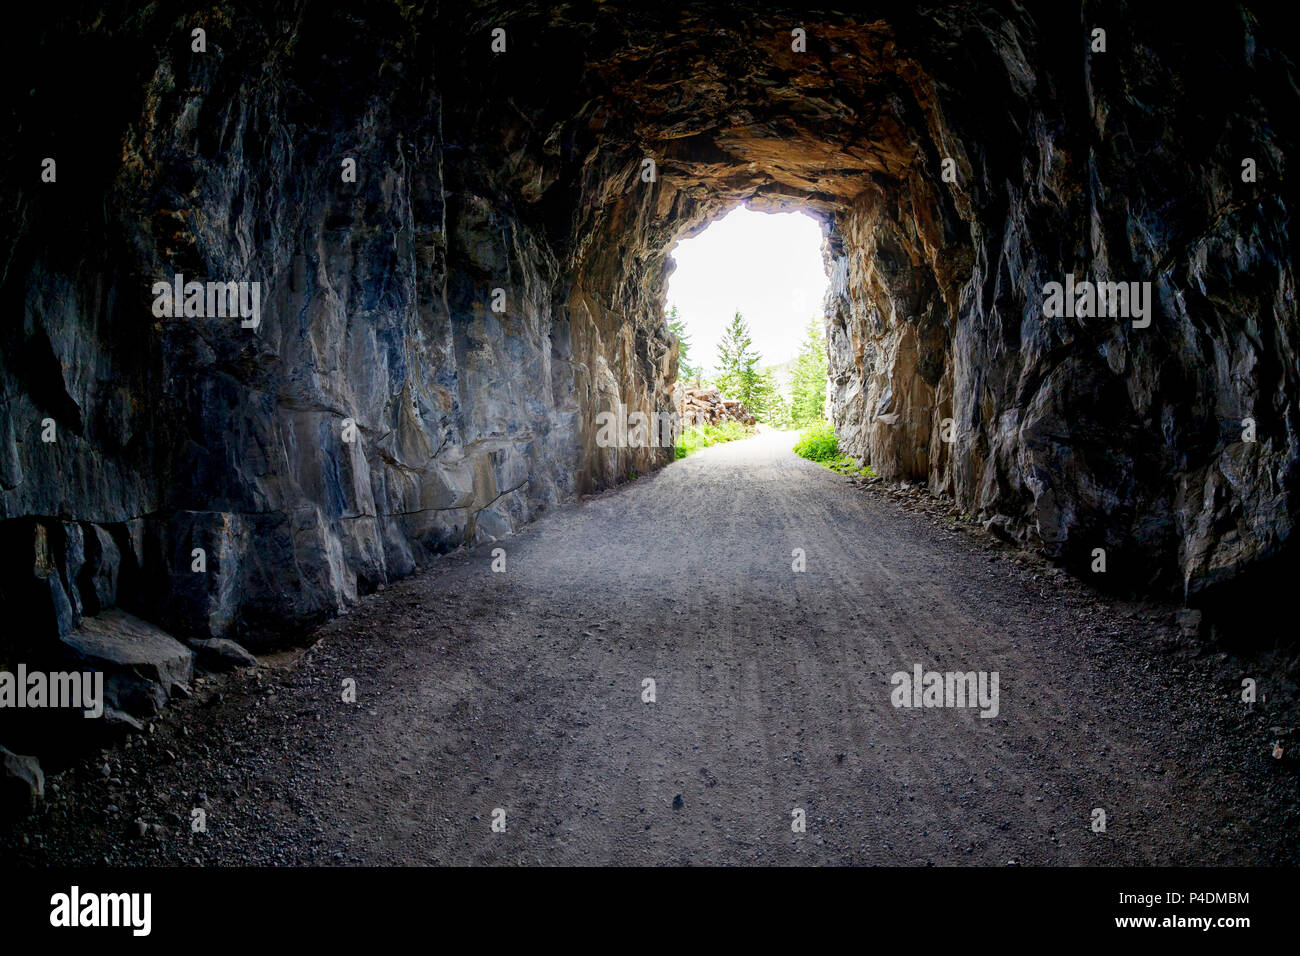 Light at the end of the tunnel at Myra Canyon in Kelonwa, British Columbia, Canada. Concept of conquering adversity or success through obstacles. - Stock Image